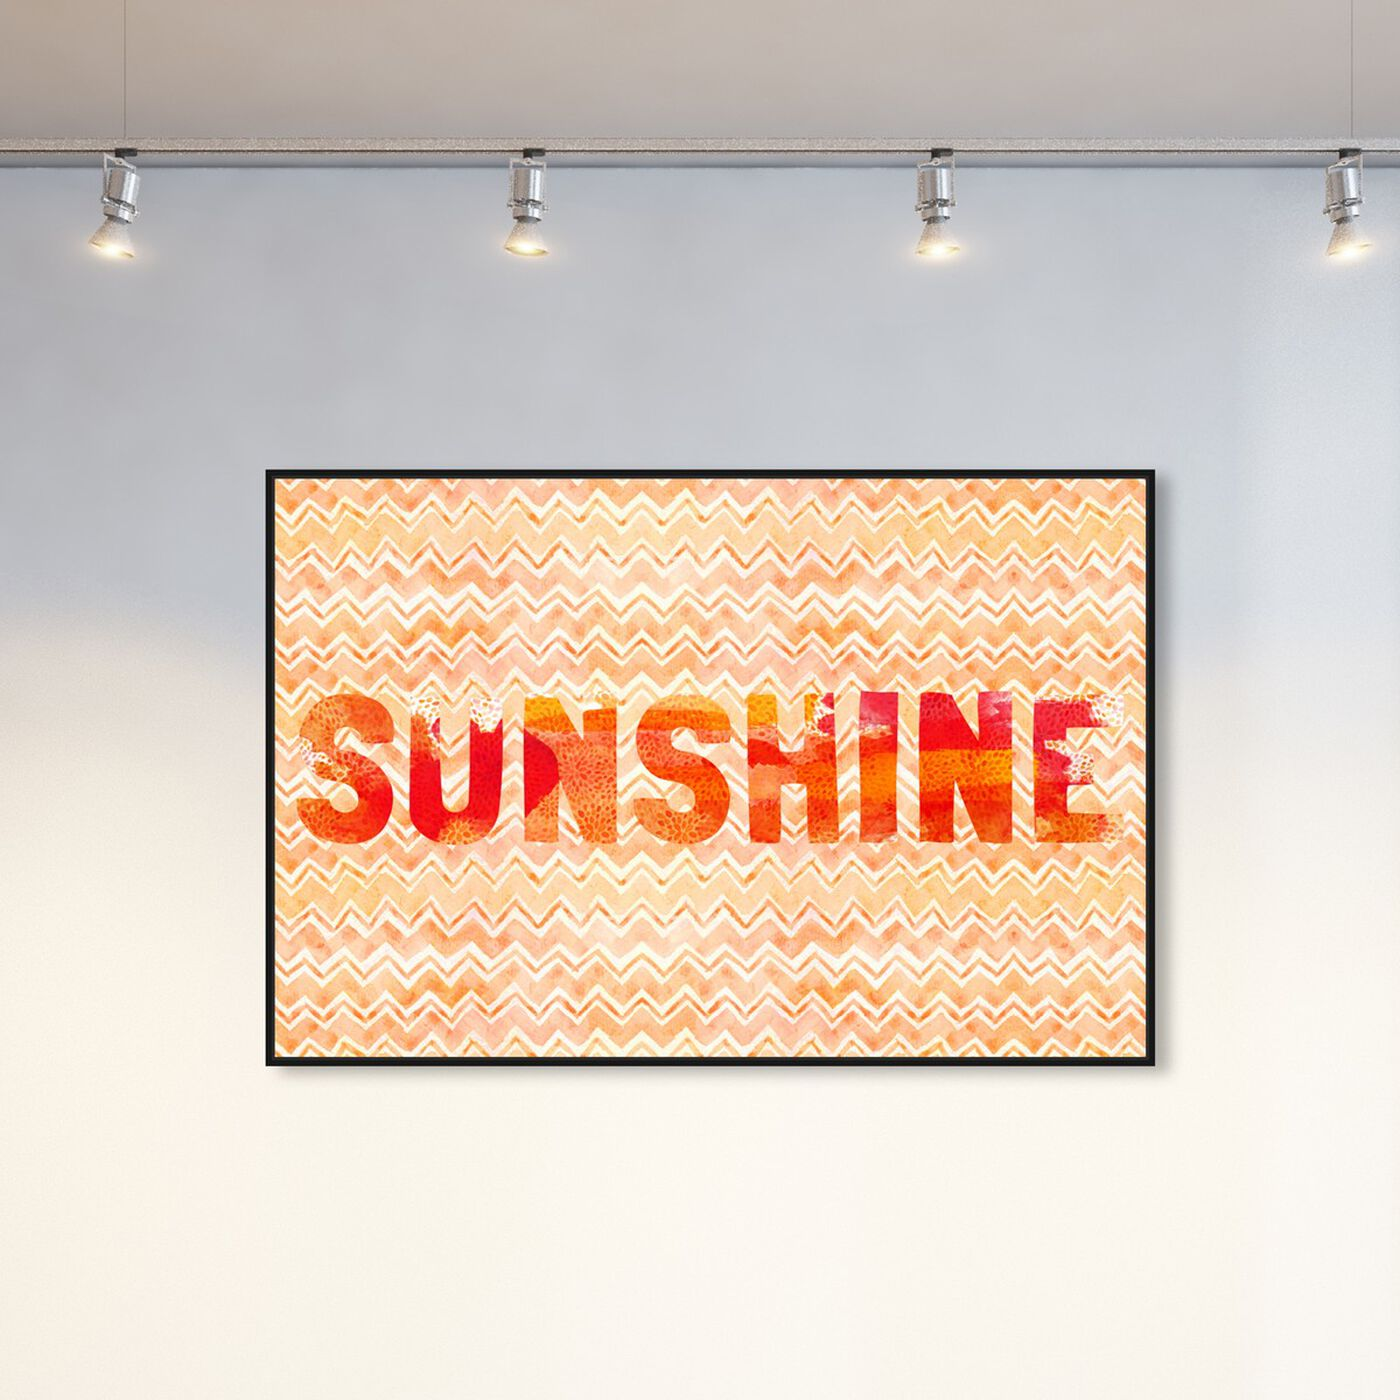 Hanging view of Sunshine featuring typography and quotes and beauty quotes and sayings art.